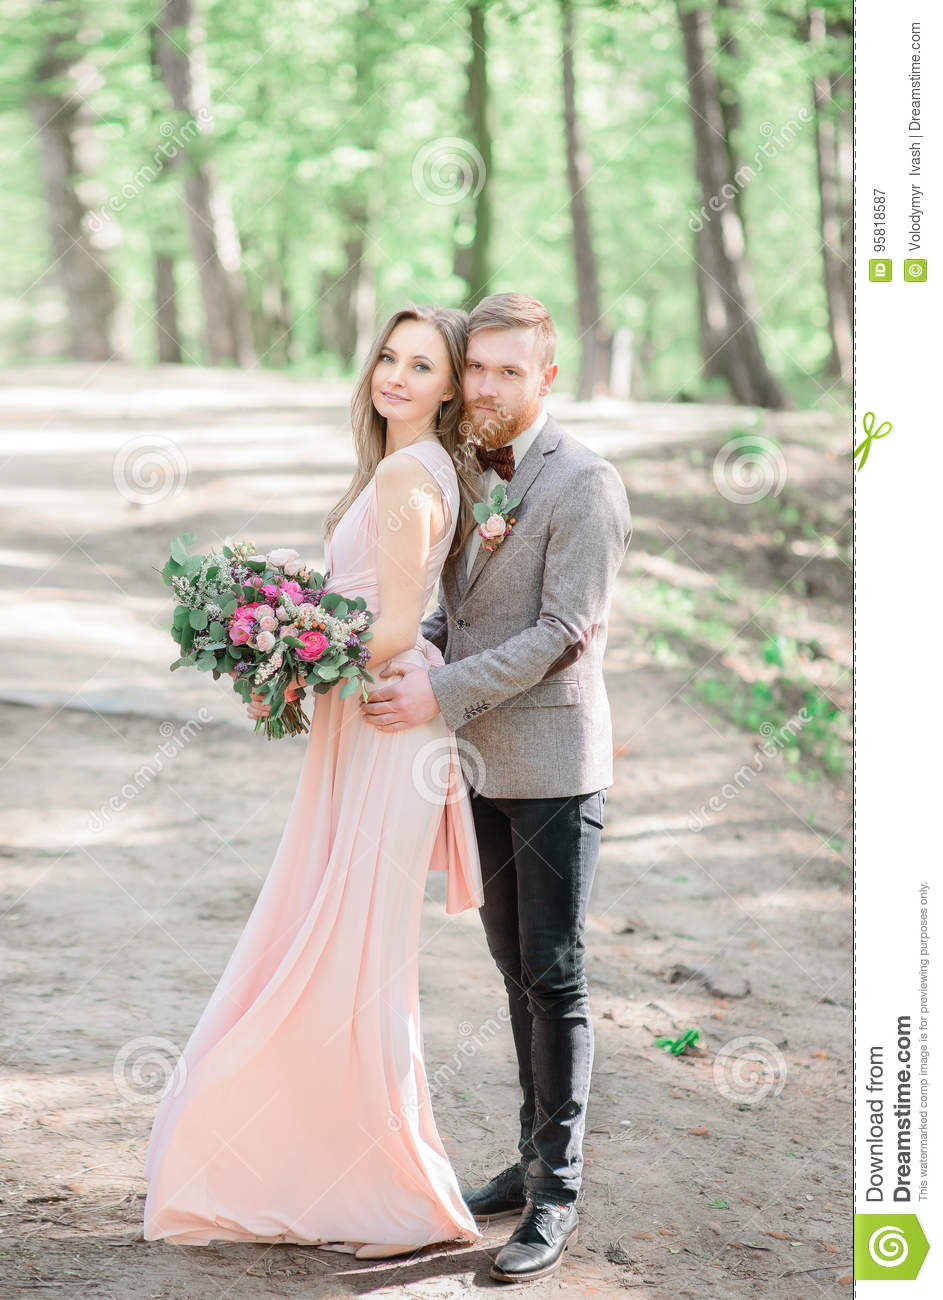 Stylish Groom In Grey Jacket Hugs Pretty Bride In Pink Dress